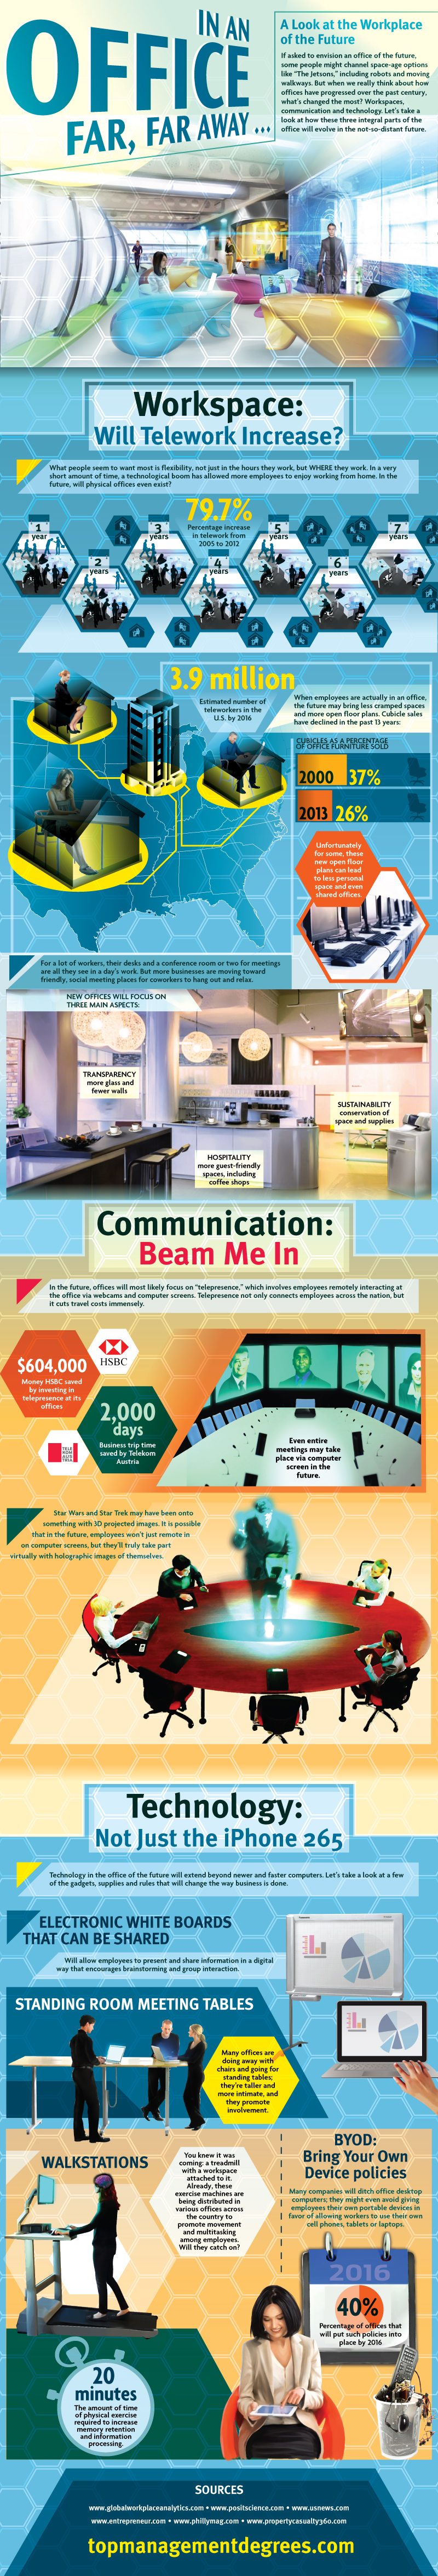 future workplace infographic